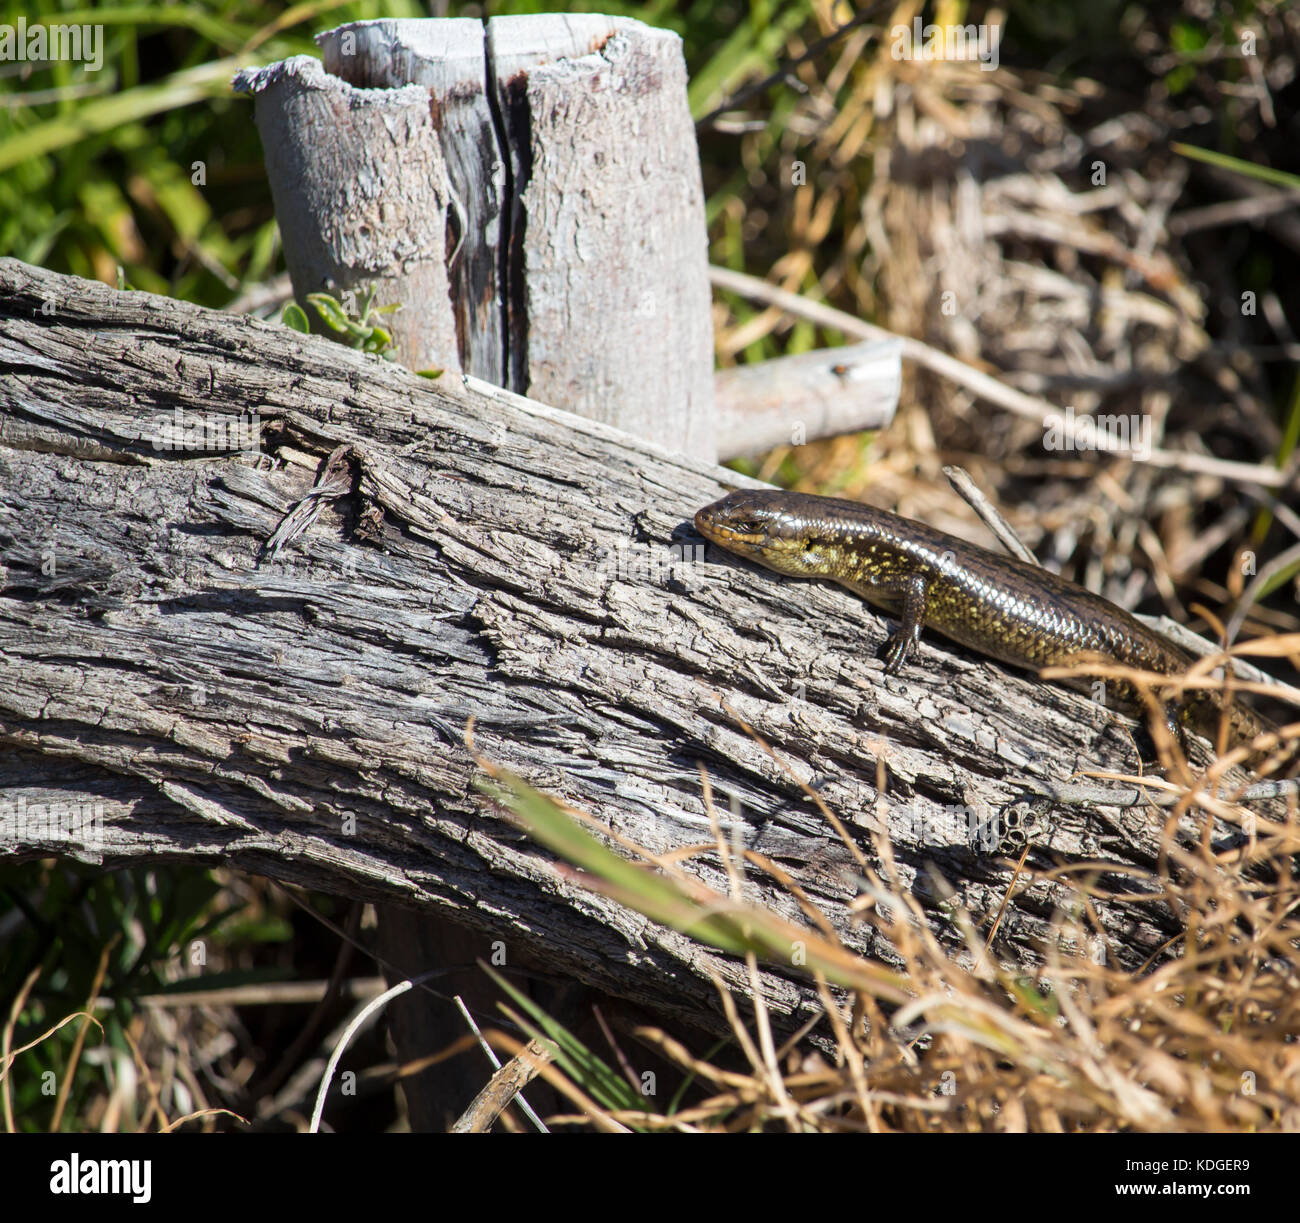 Western Glossy Swamp Skink (Lissolepis luctuosa) , genus Lissolepis sun baking on an old log  in winter at Big Swamp, Stock Photo